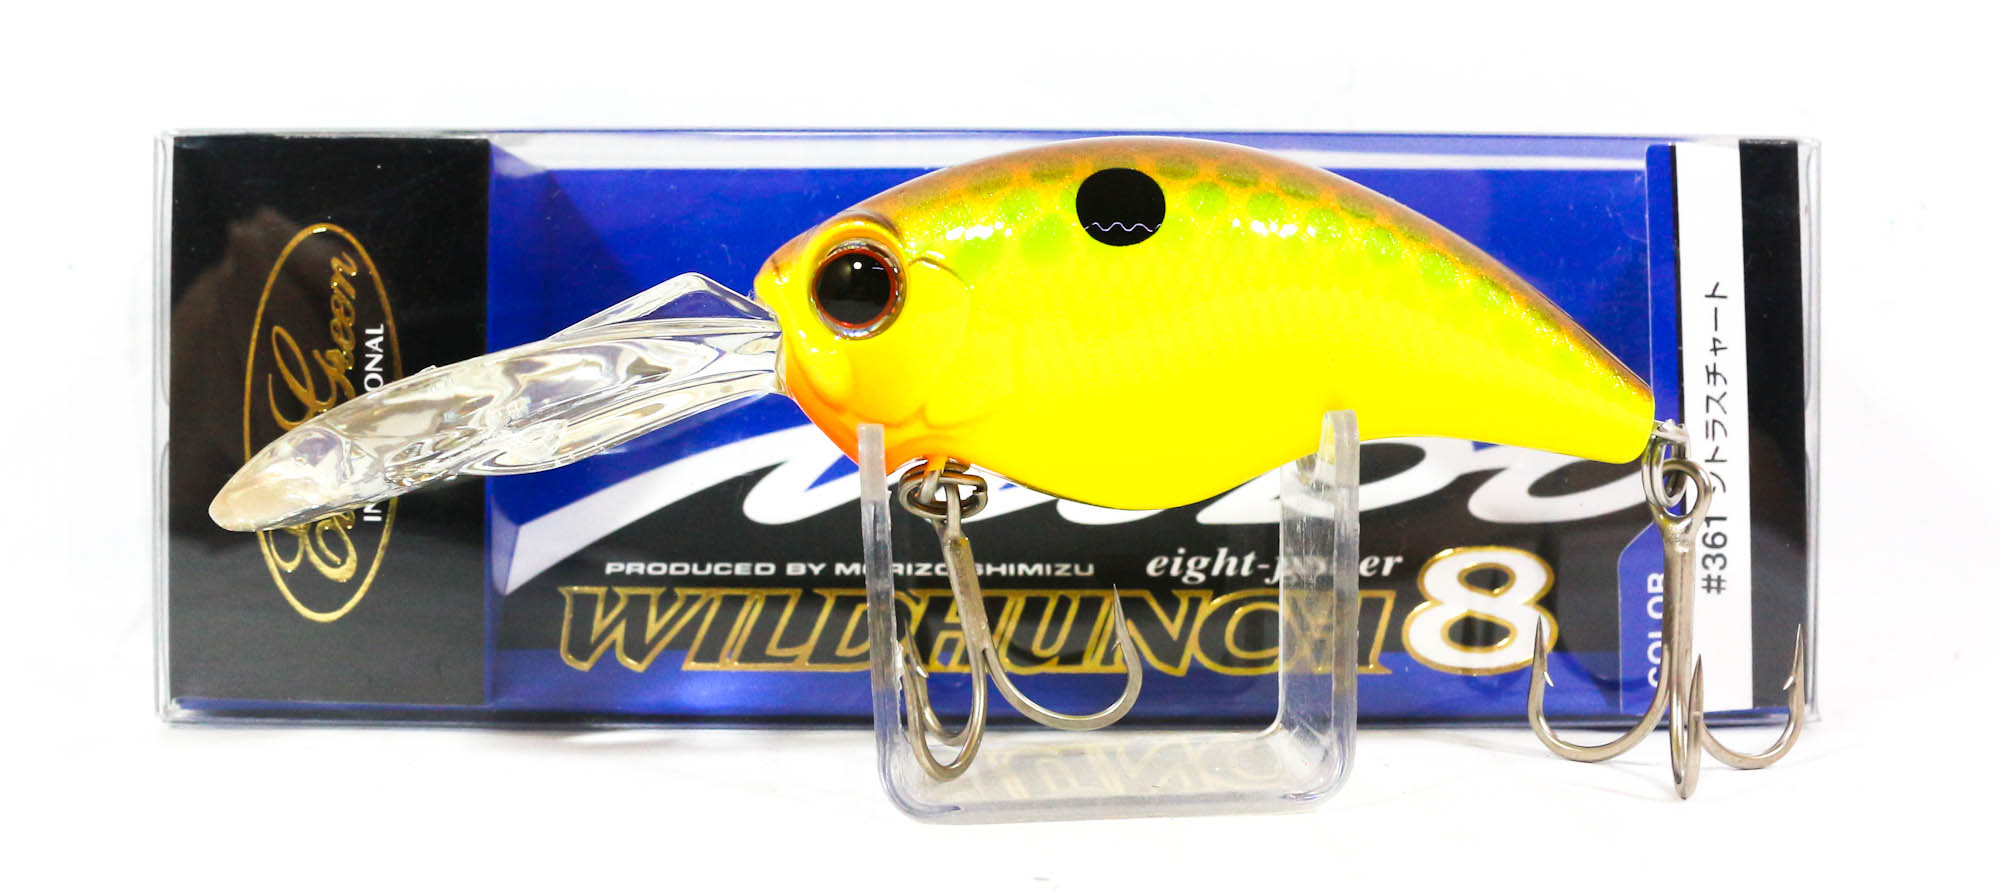 Evergreen Combat Crank Wild Hunch Eight Footer Floating Lure 361 (9568)